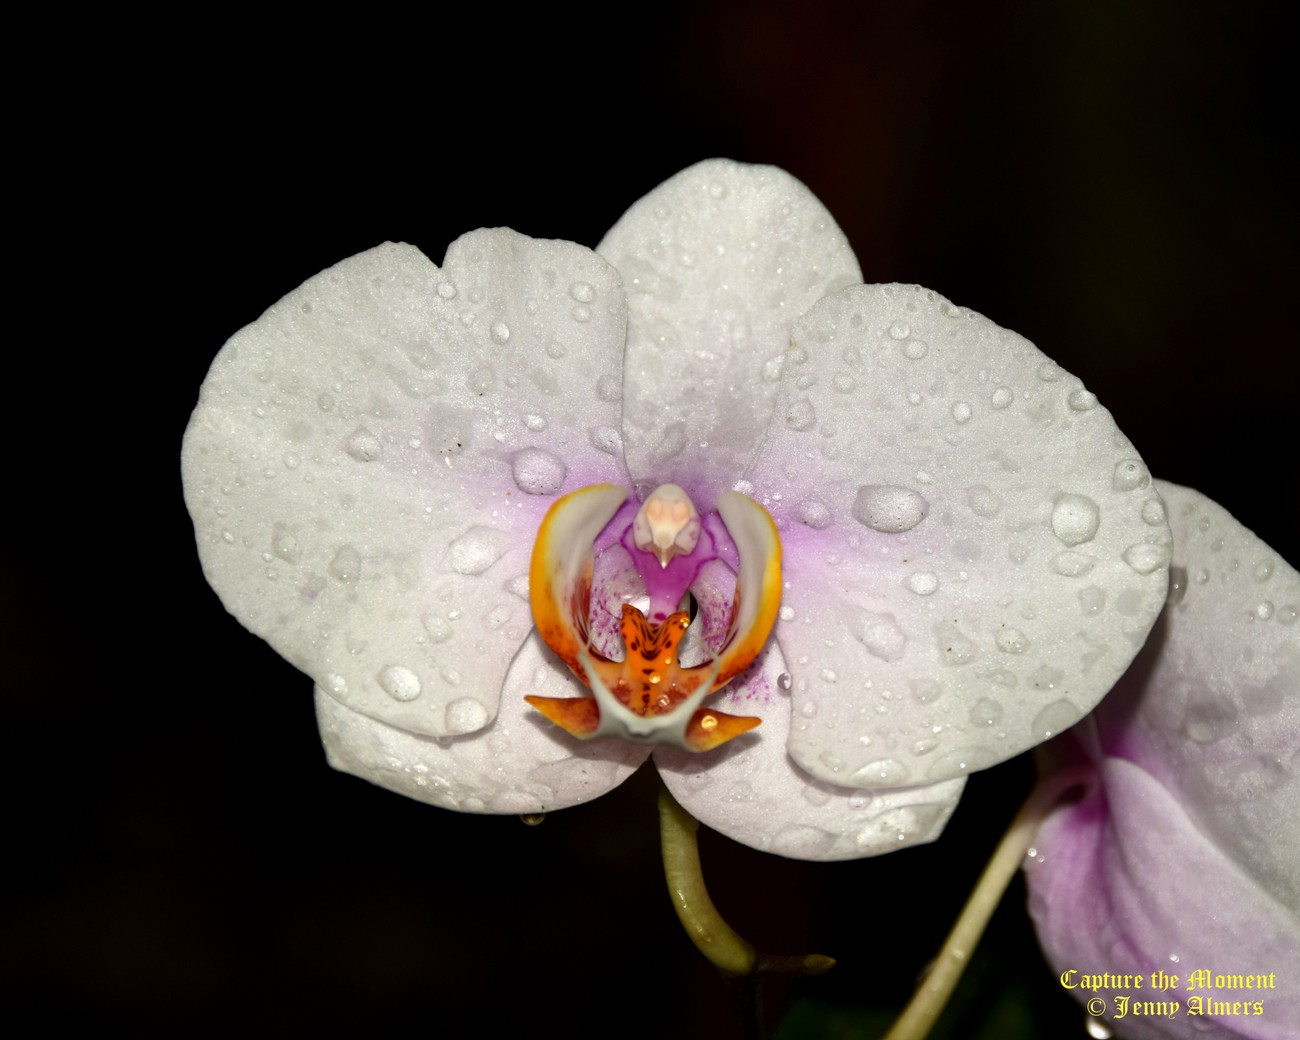 Orchid and Water Droplets